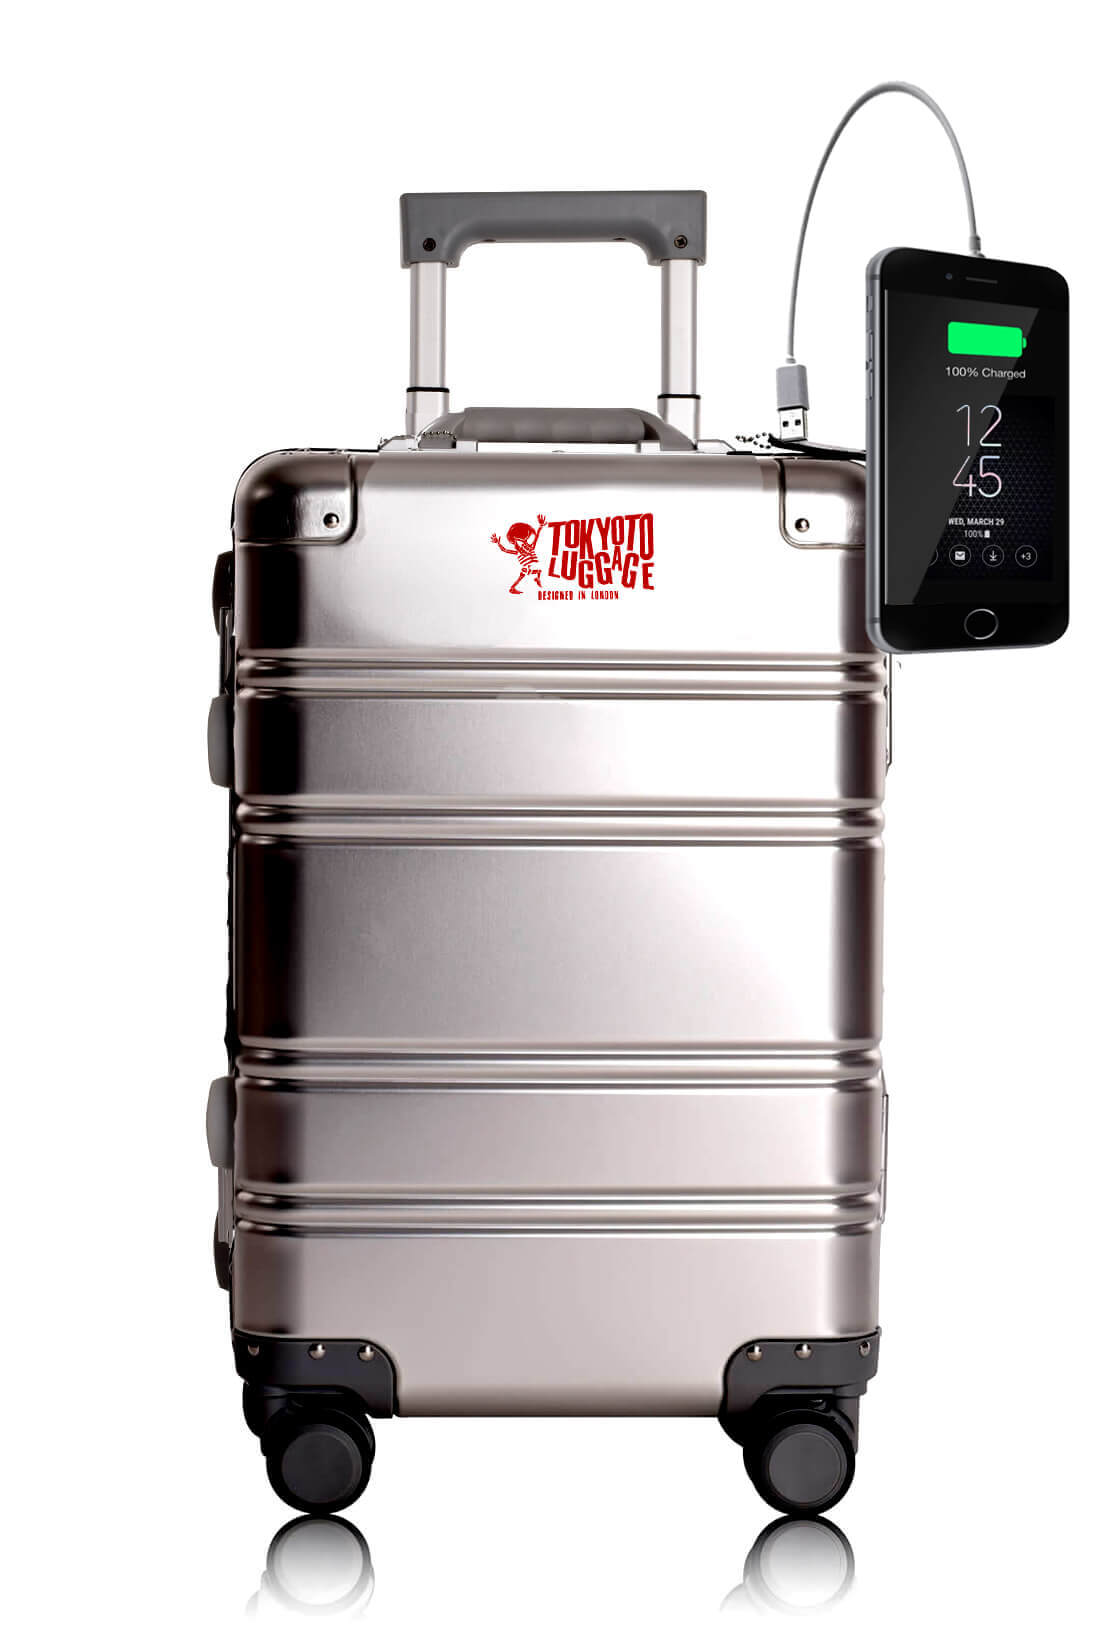 Full Aluminum Suitcase Cabin Size Carry-on Luggage Trolley SILVER LOGO